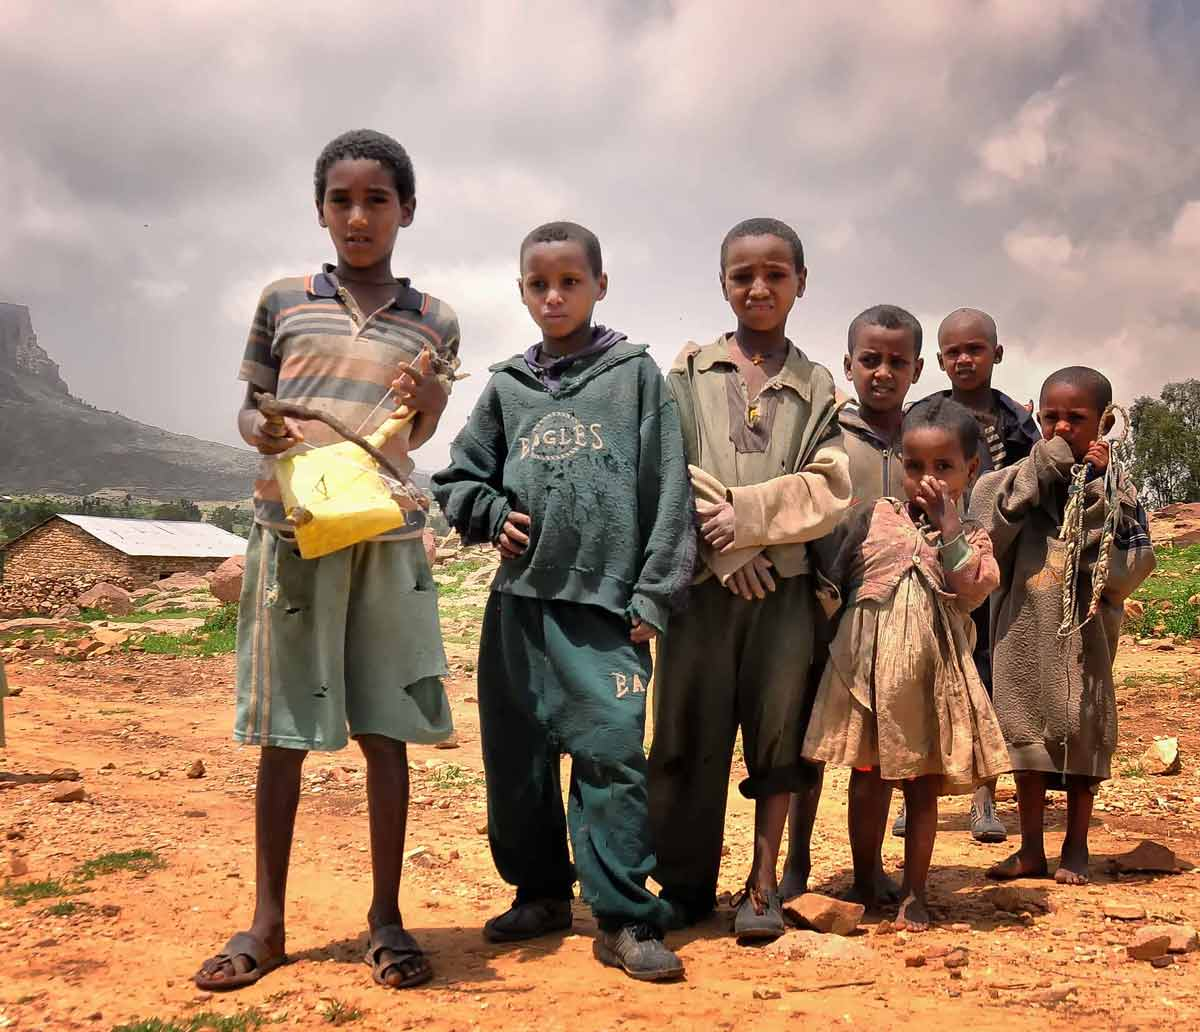 Starving Children in Ethiopia